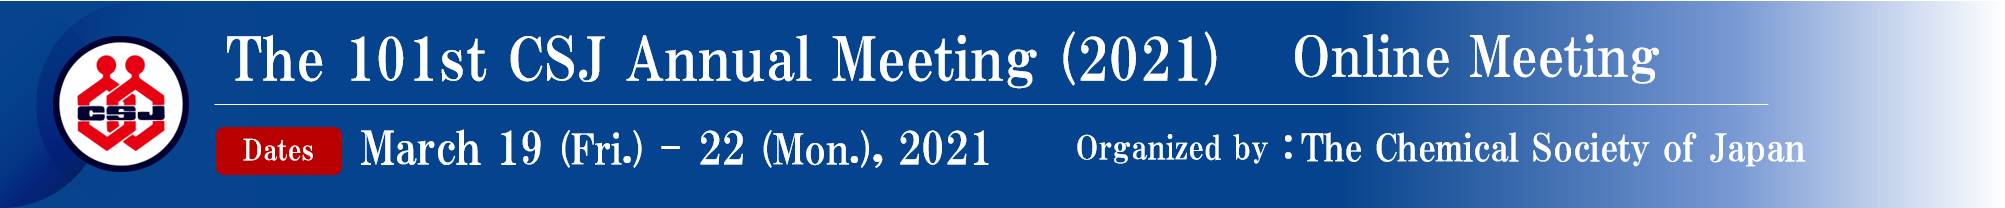 The 101st CSJ Annual Meeting